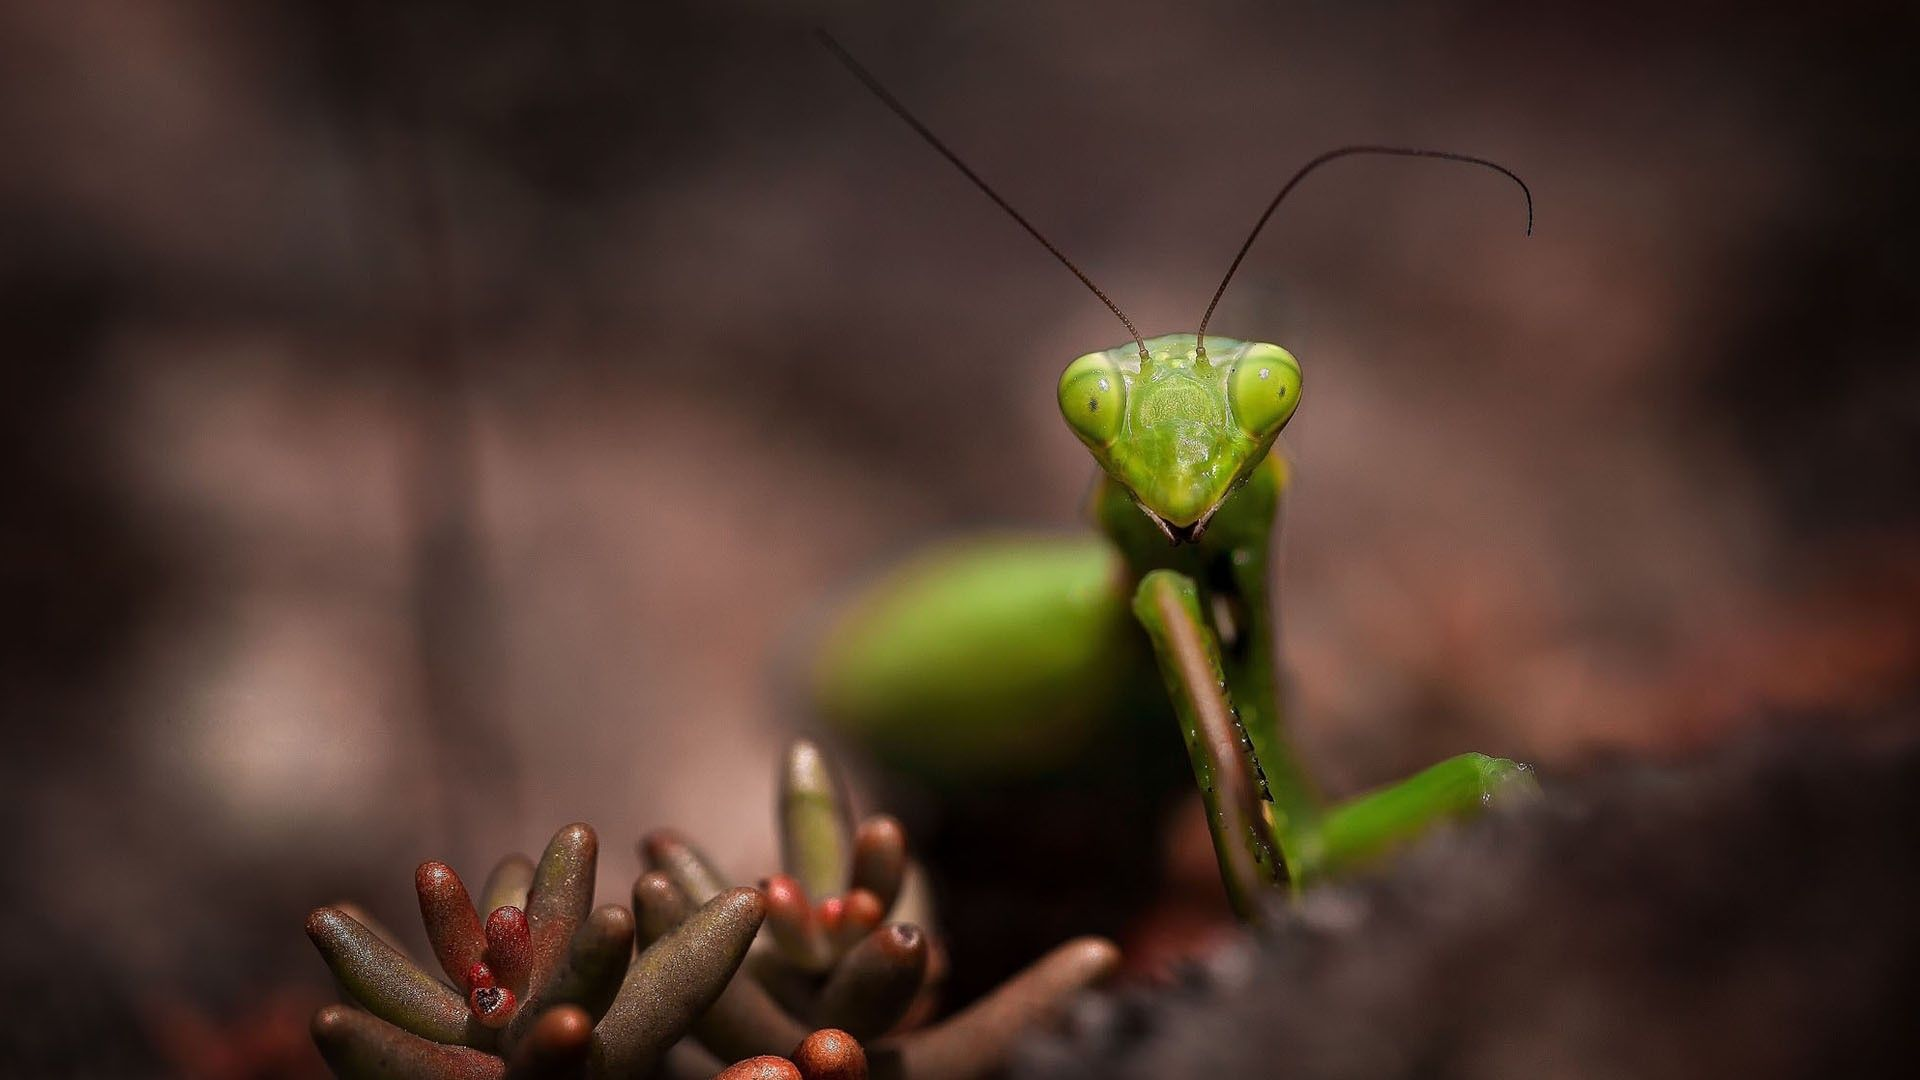 mantis, insect, mustache - http://www.wallpapers4u.org/mantis-insect-mustache/